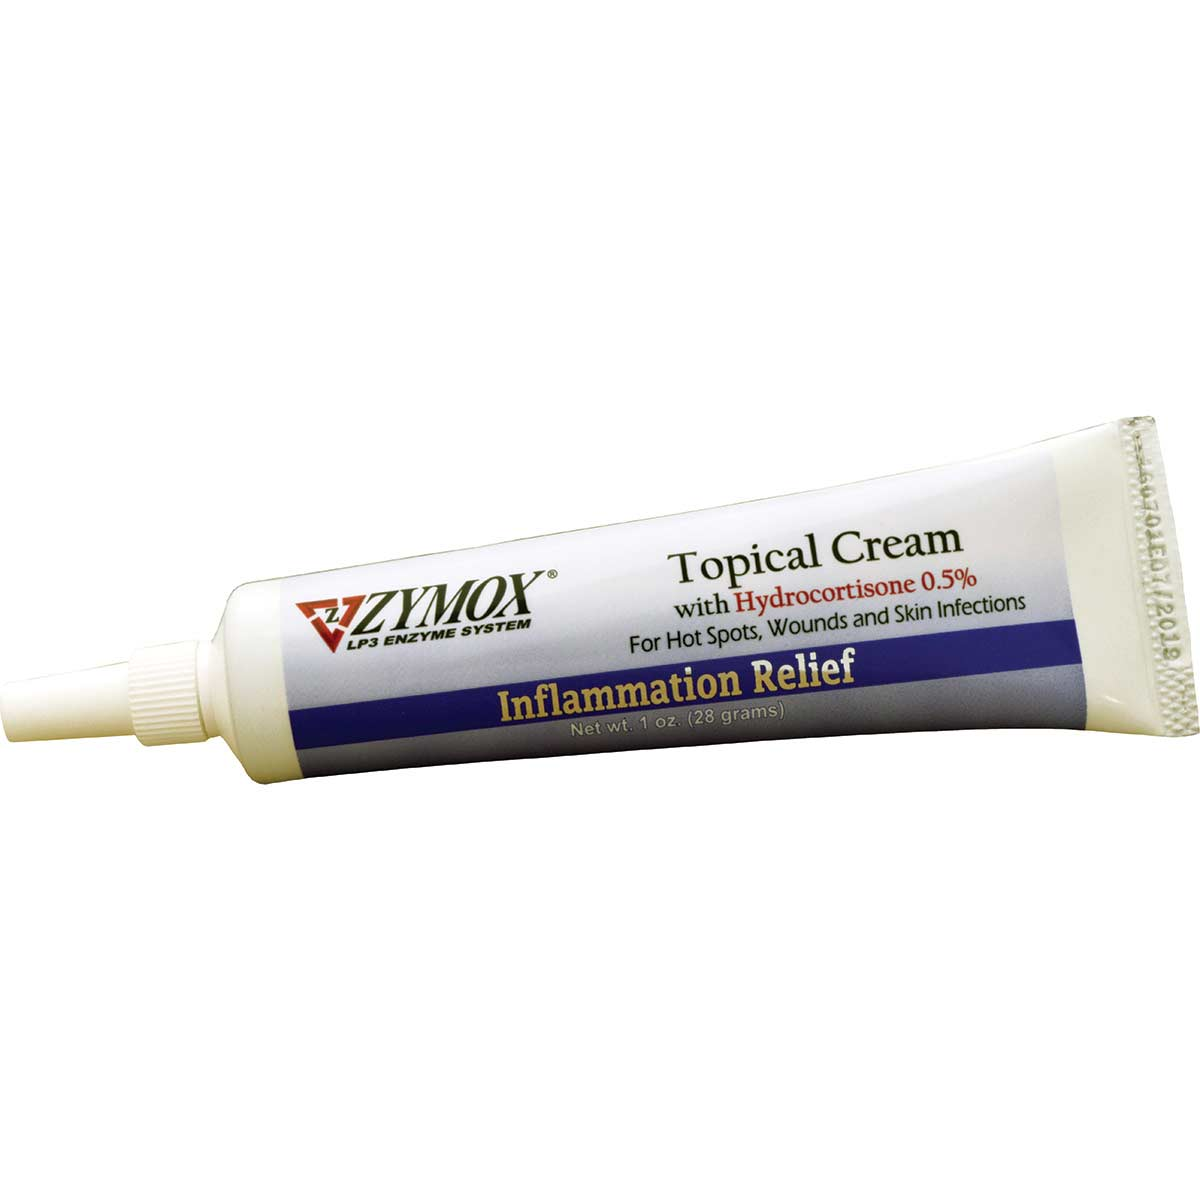 Zymox Inflammation Relief Topical Cream for dogs with .5% Hydrocortisone 1 oz